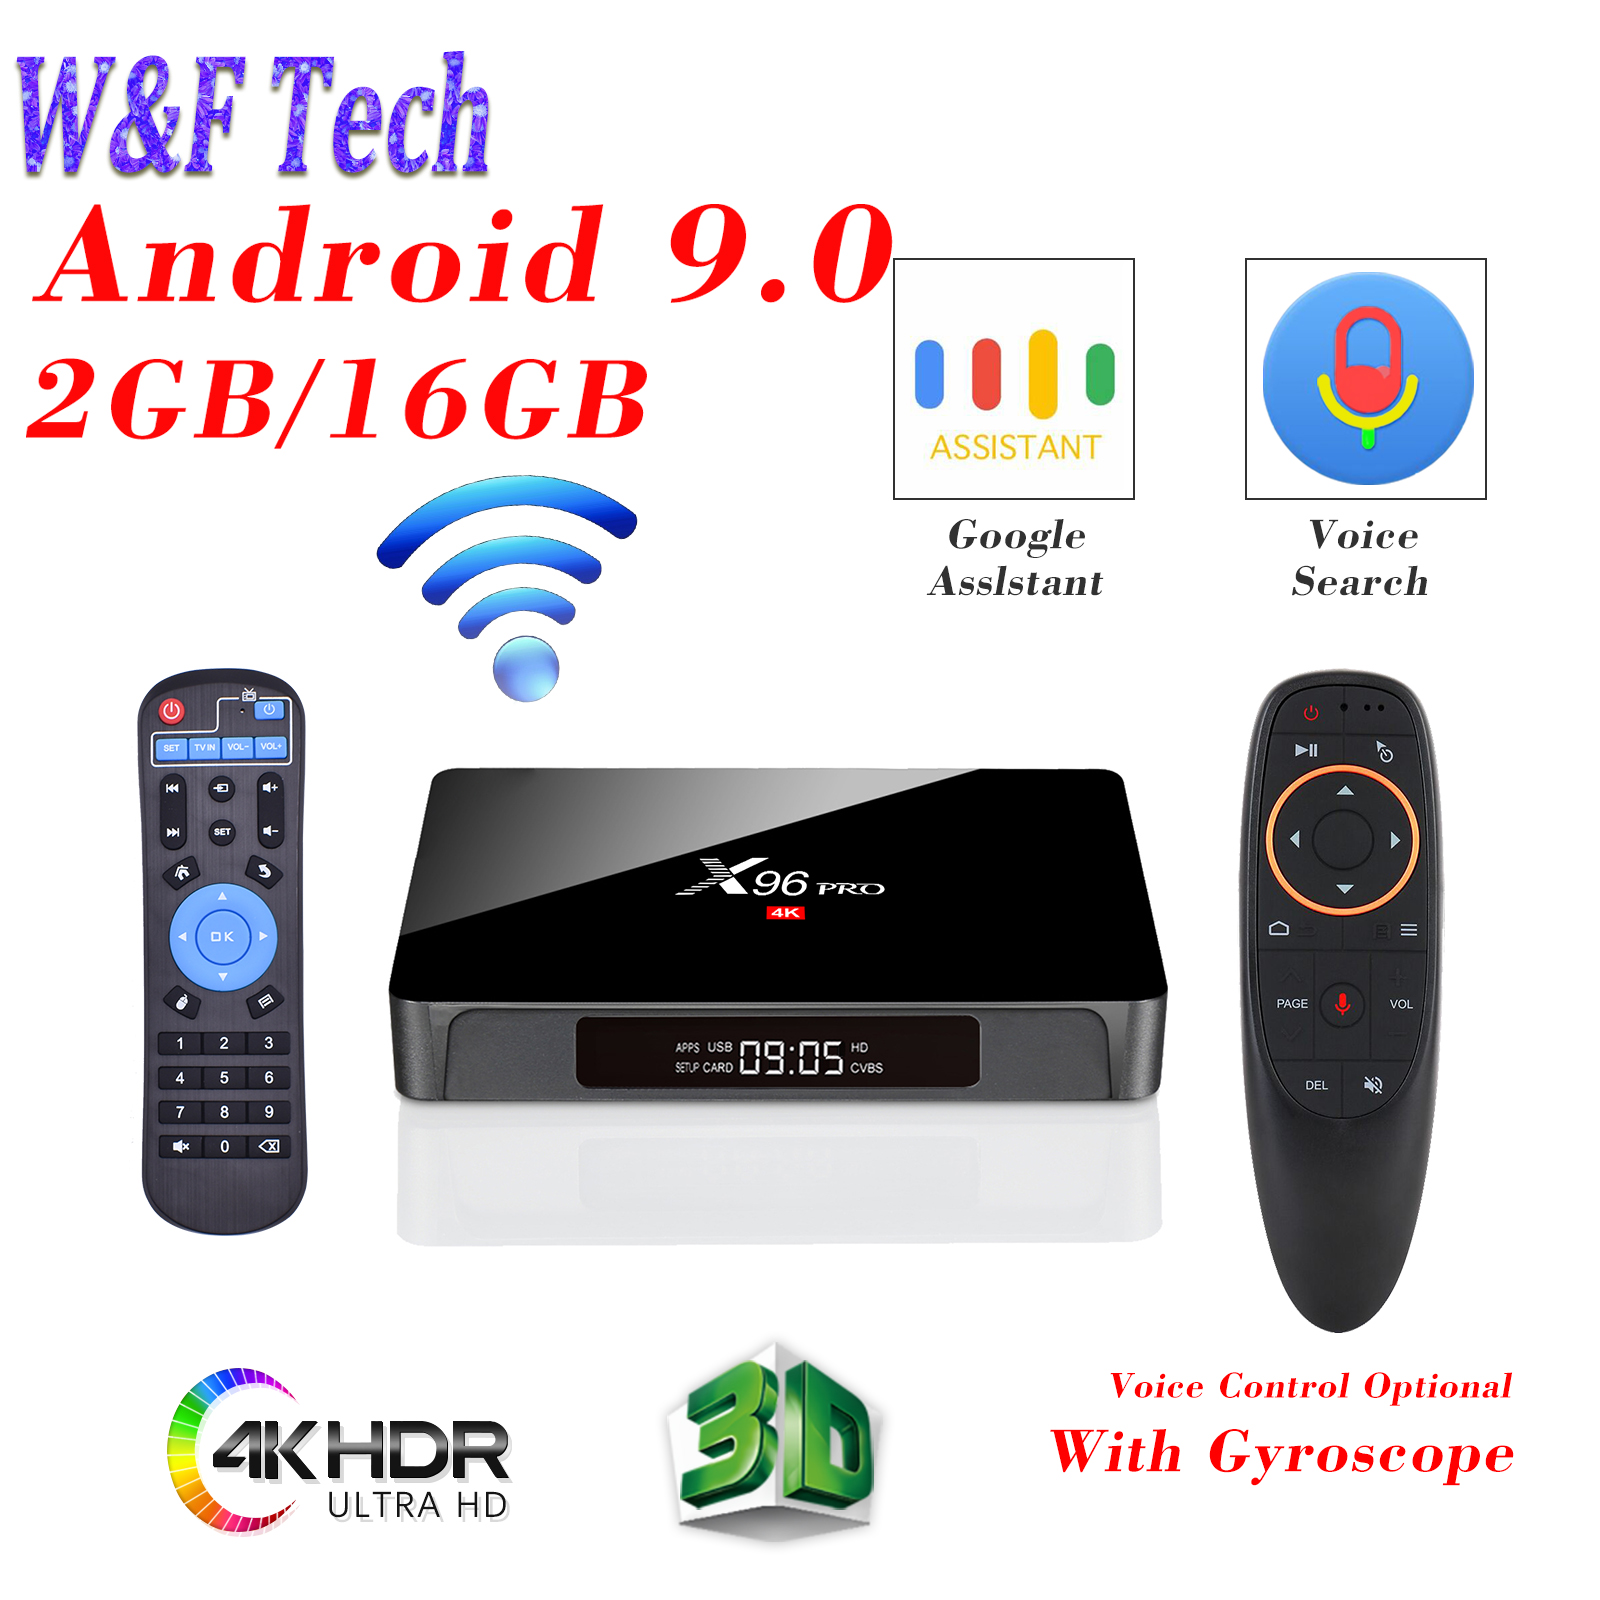 X96 PRO TV Box Android 9.0 Amlgoic S905W 2GB 16GB 4K IPTV Smart TV BOX YouTube Netflix Player Updated X96 MINI TV Set Top Box